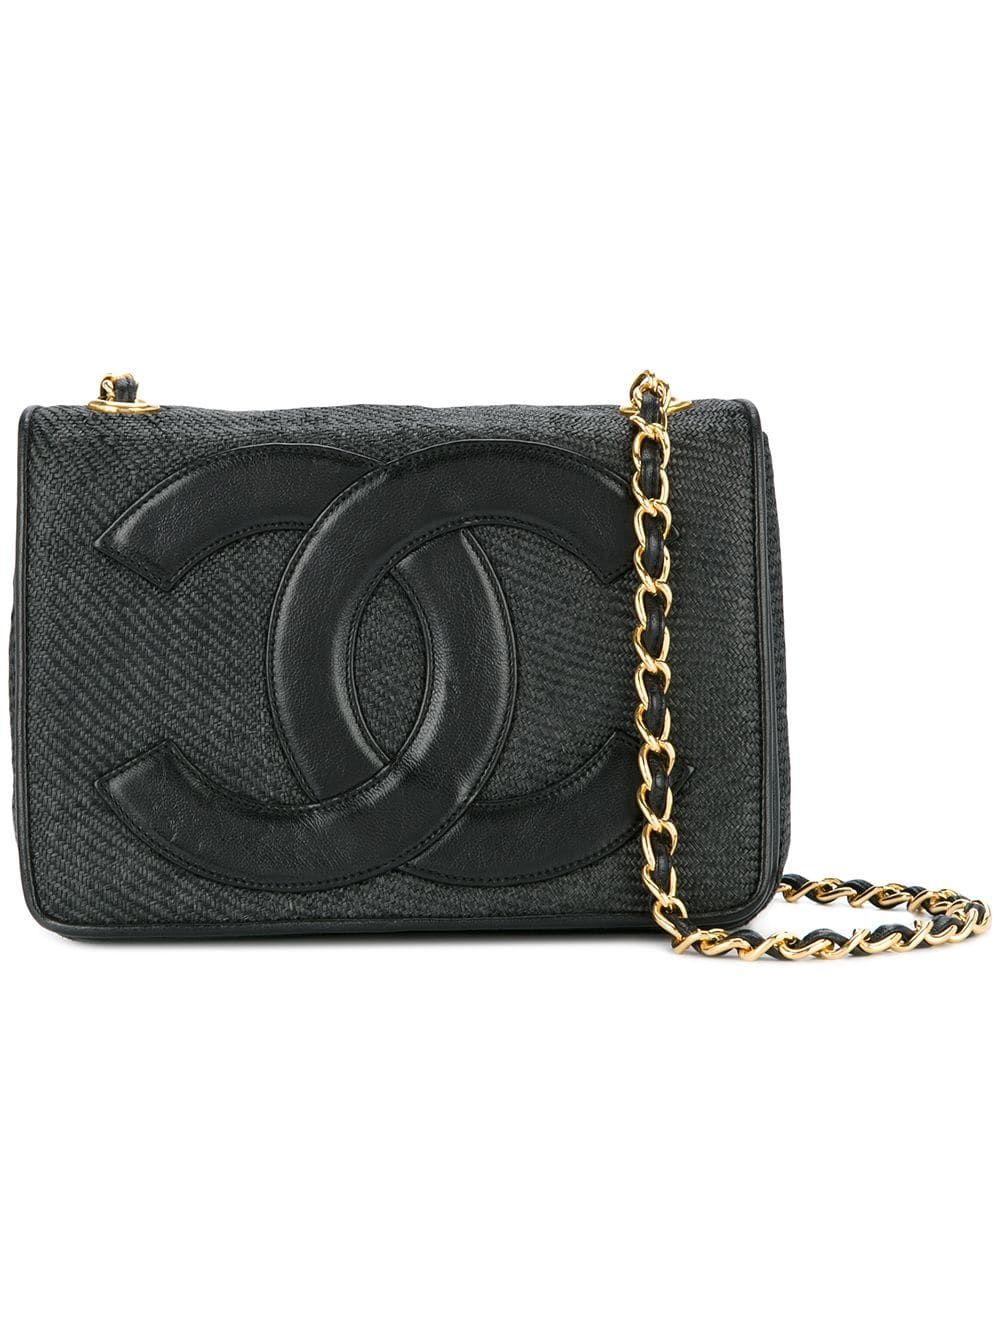 ec46798a06 Chanel Pre-Owned logo patch shoulder bag - Black in 2019 | Products ...